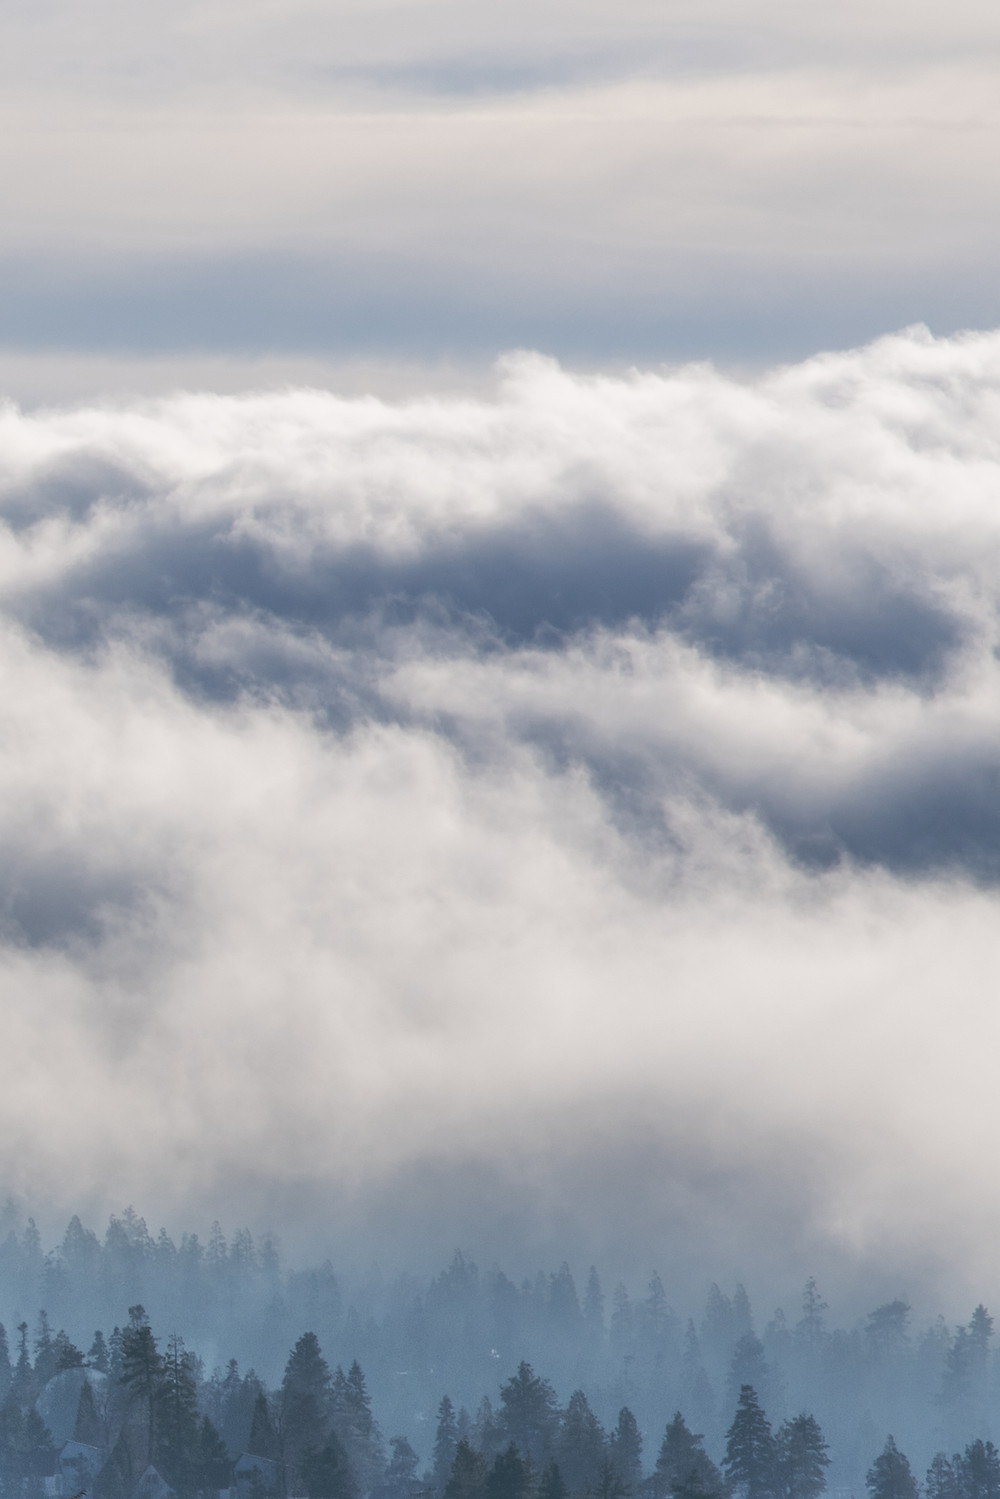 Lake Arrowhead, Fog, Trees, Clouds, California